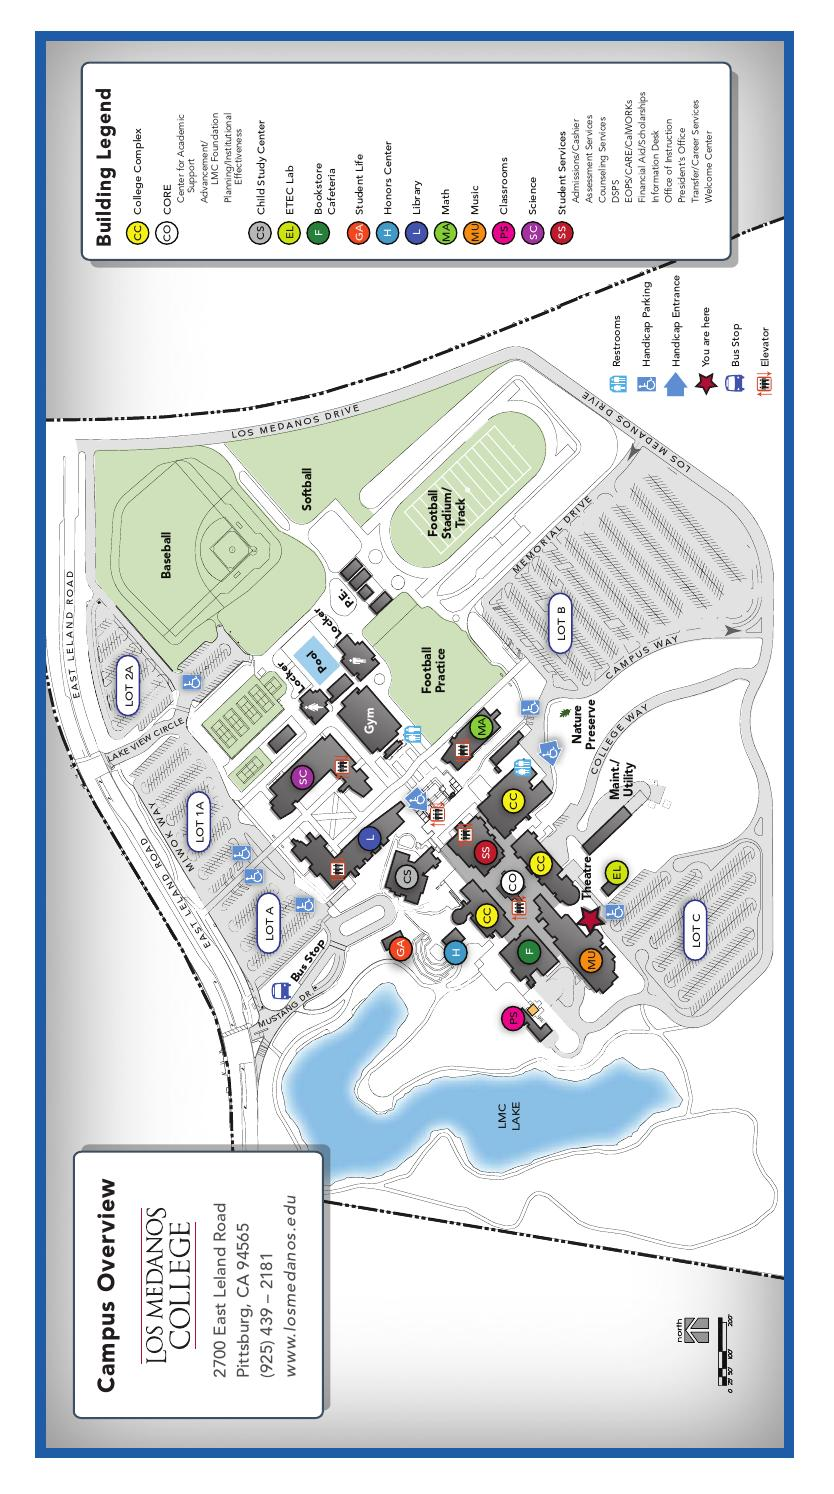 Lmc Pittsburg Campus Map.2015 Summer Class Schedule For Los Medanos College By Los Medanos